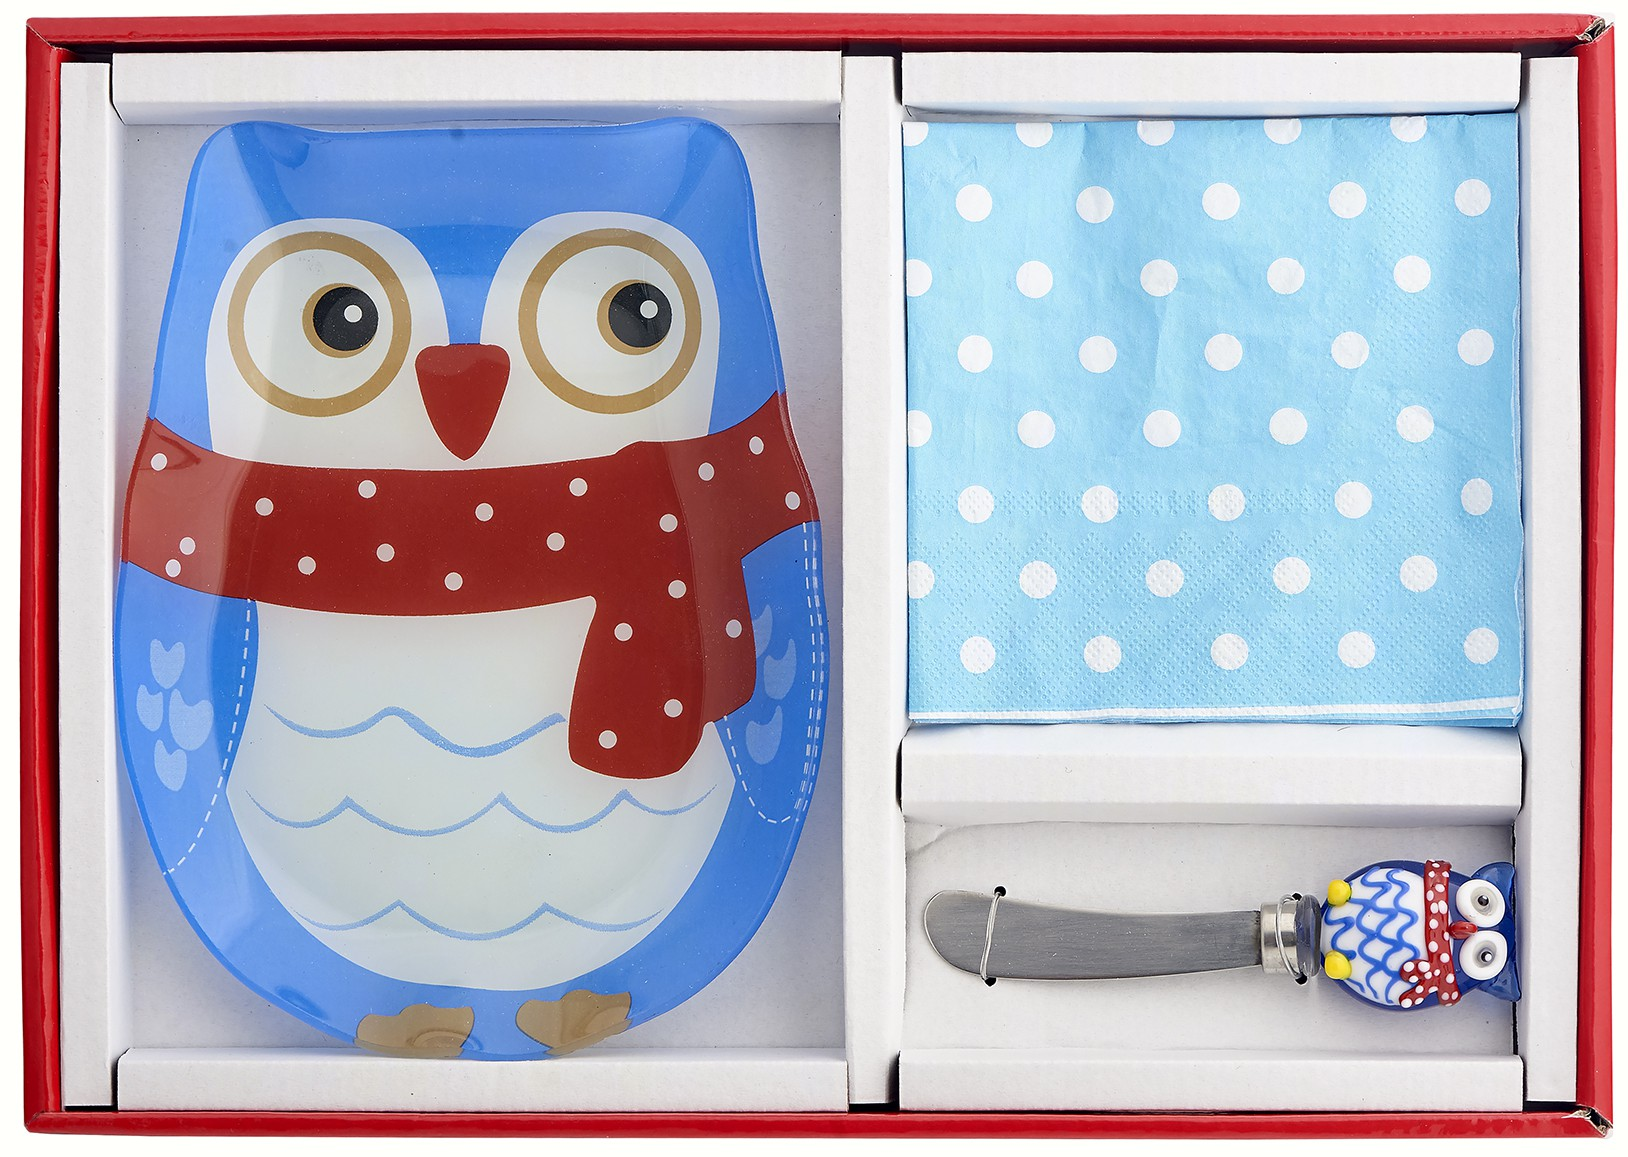 Owl Hostess Set- Includes Glass Serving Plate, Glass Spreader and Napkins